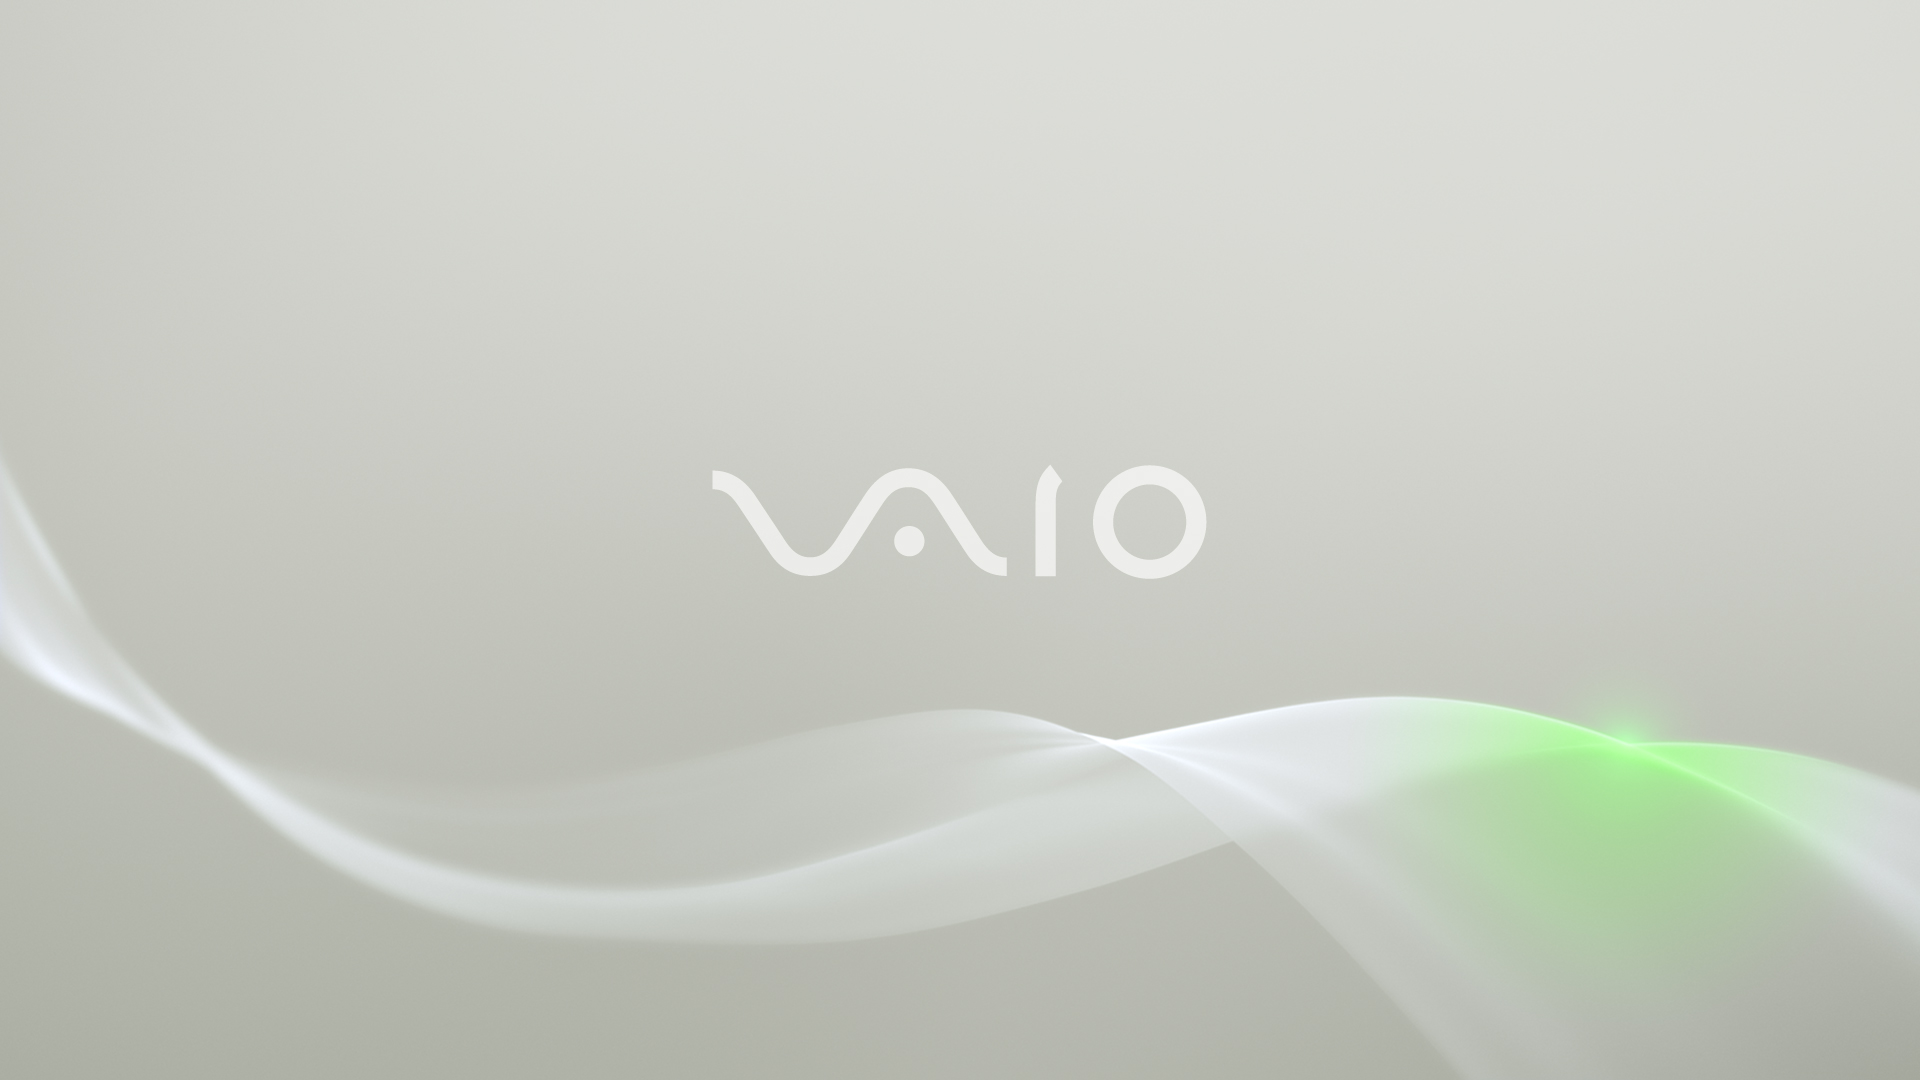 1920x1080 HD Sony Vaio Wallpapers & Vaio Backgrounds For Free Download